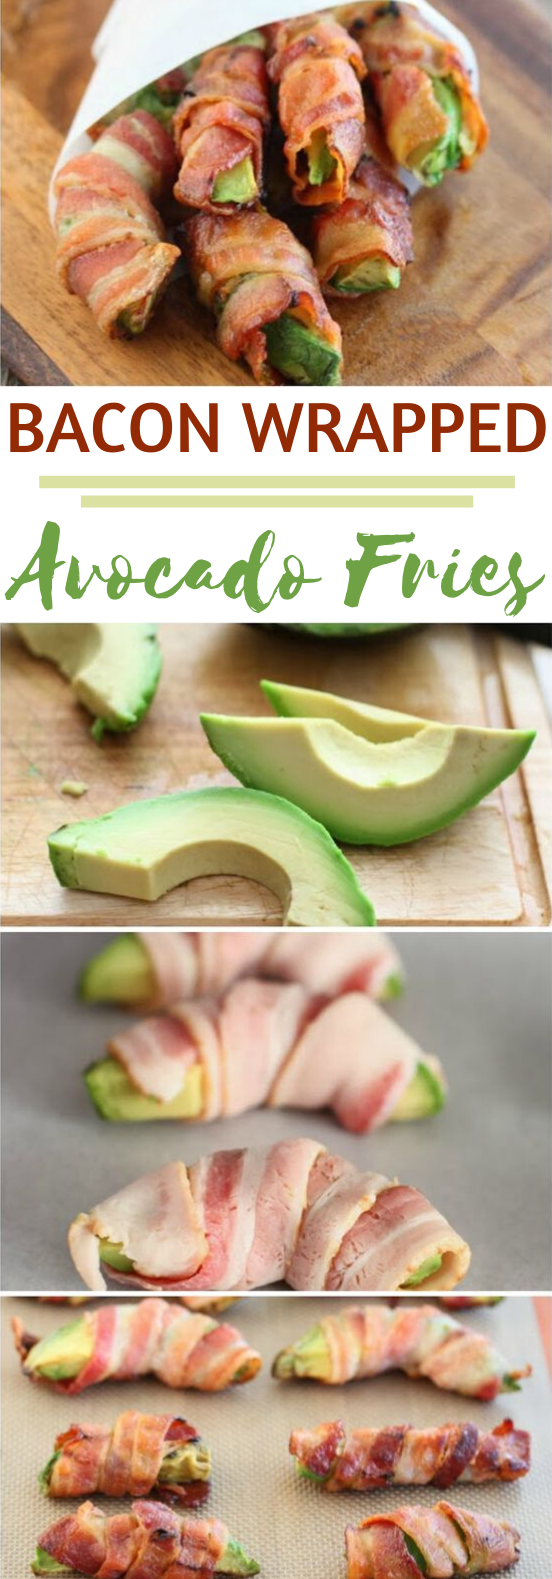 Bacon Wrapped Avocado Fries #healthy #keto #appetizers #lowcarb #partyfood